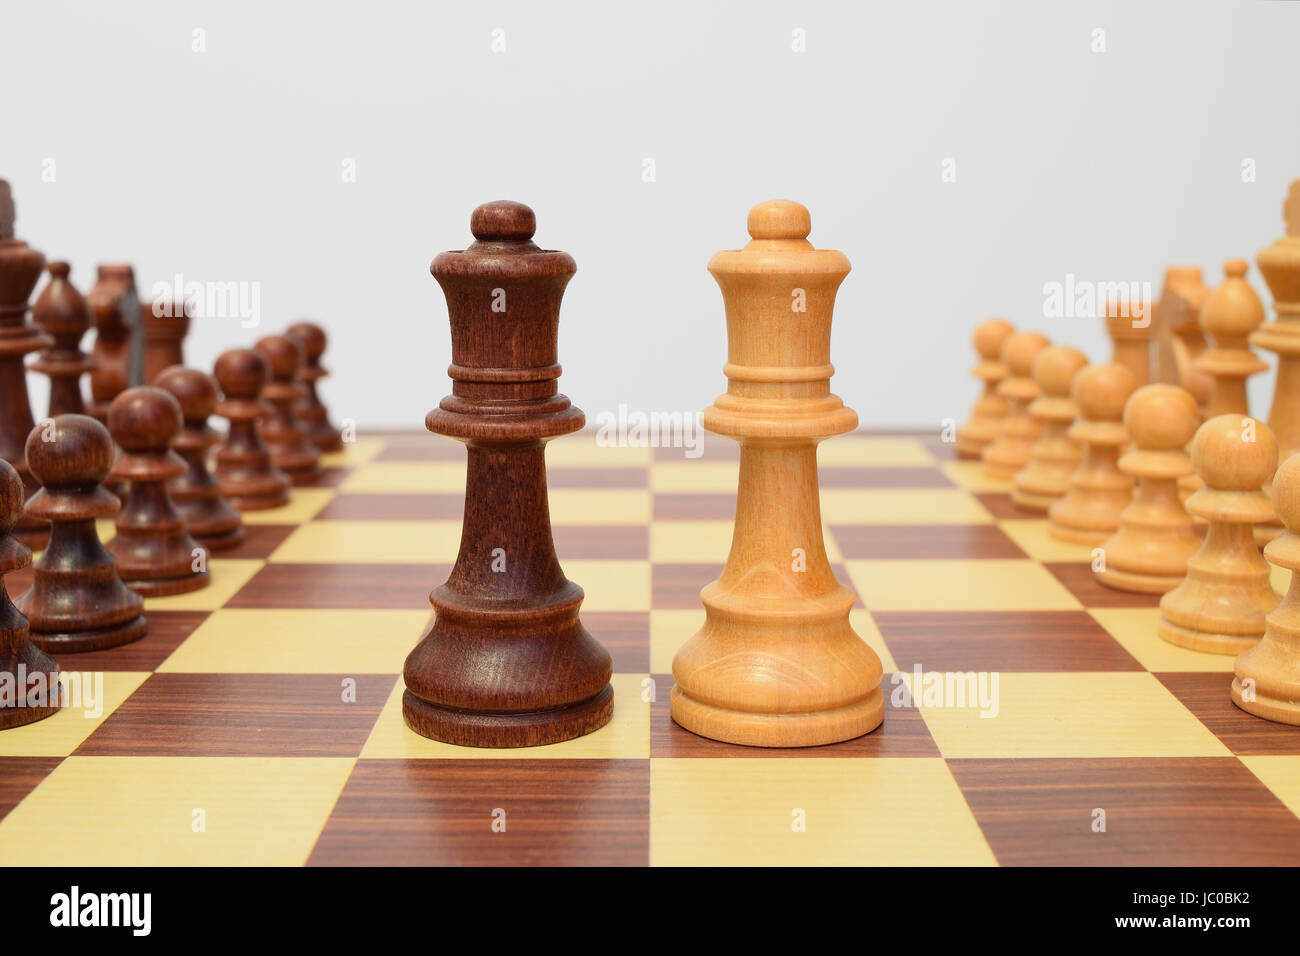 Queens at the center of the chessboard in a challenging attitude Stock Photo